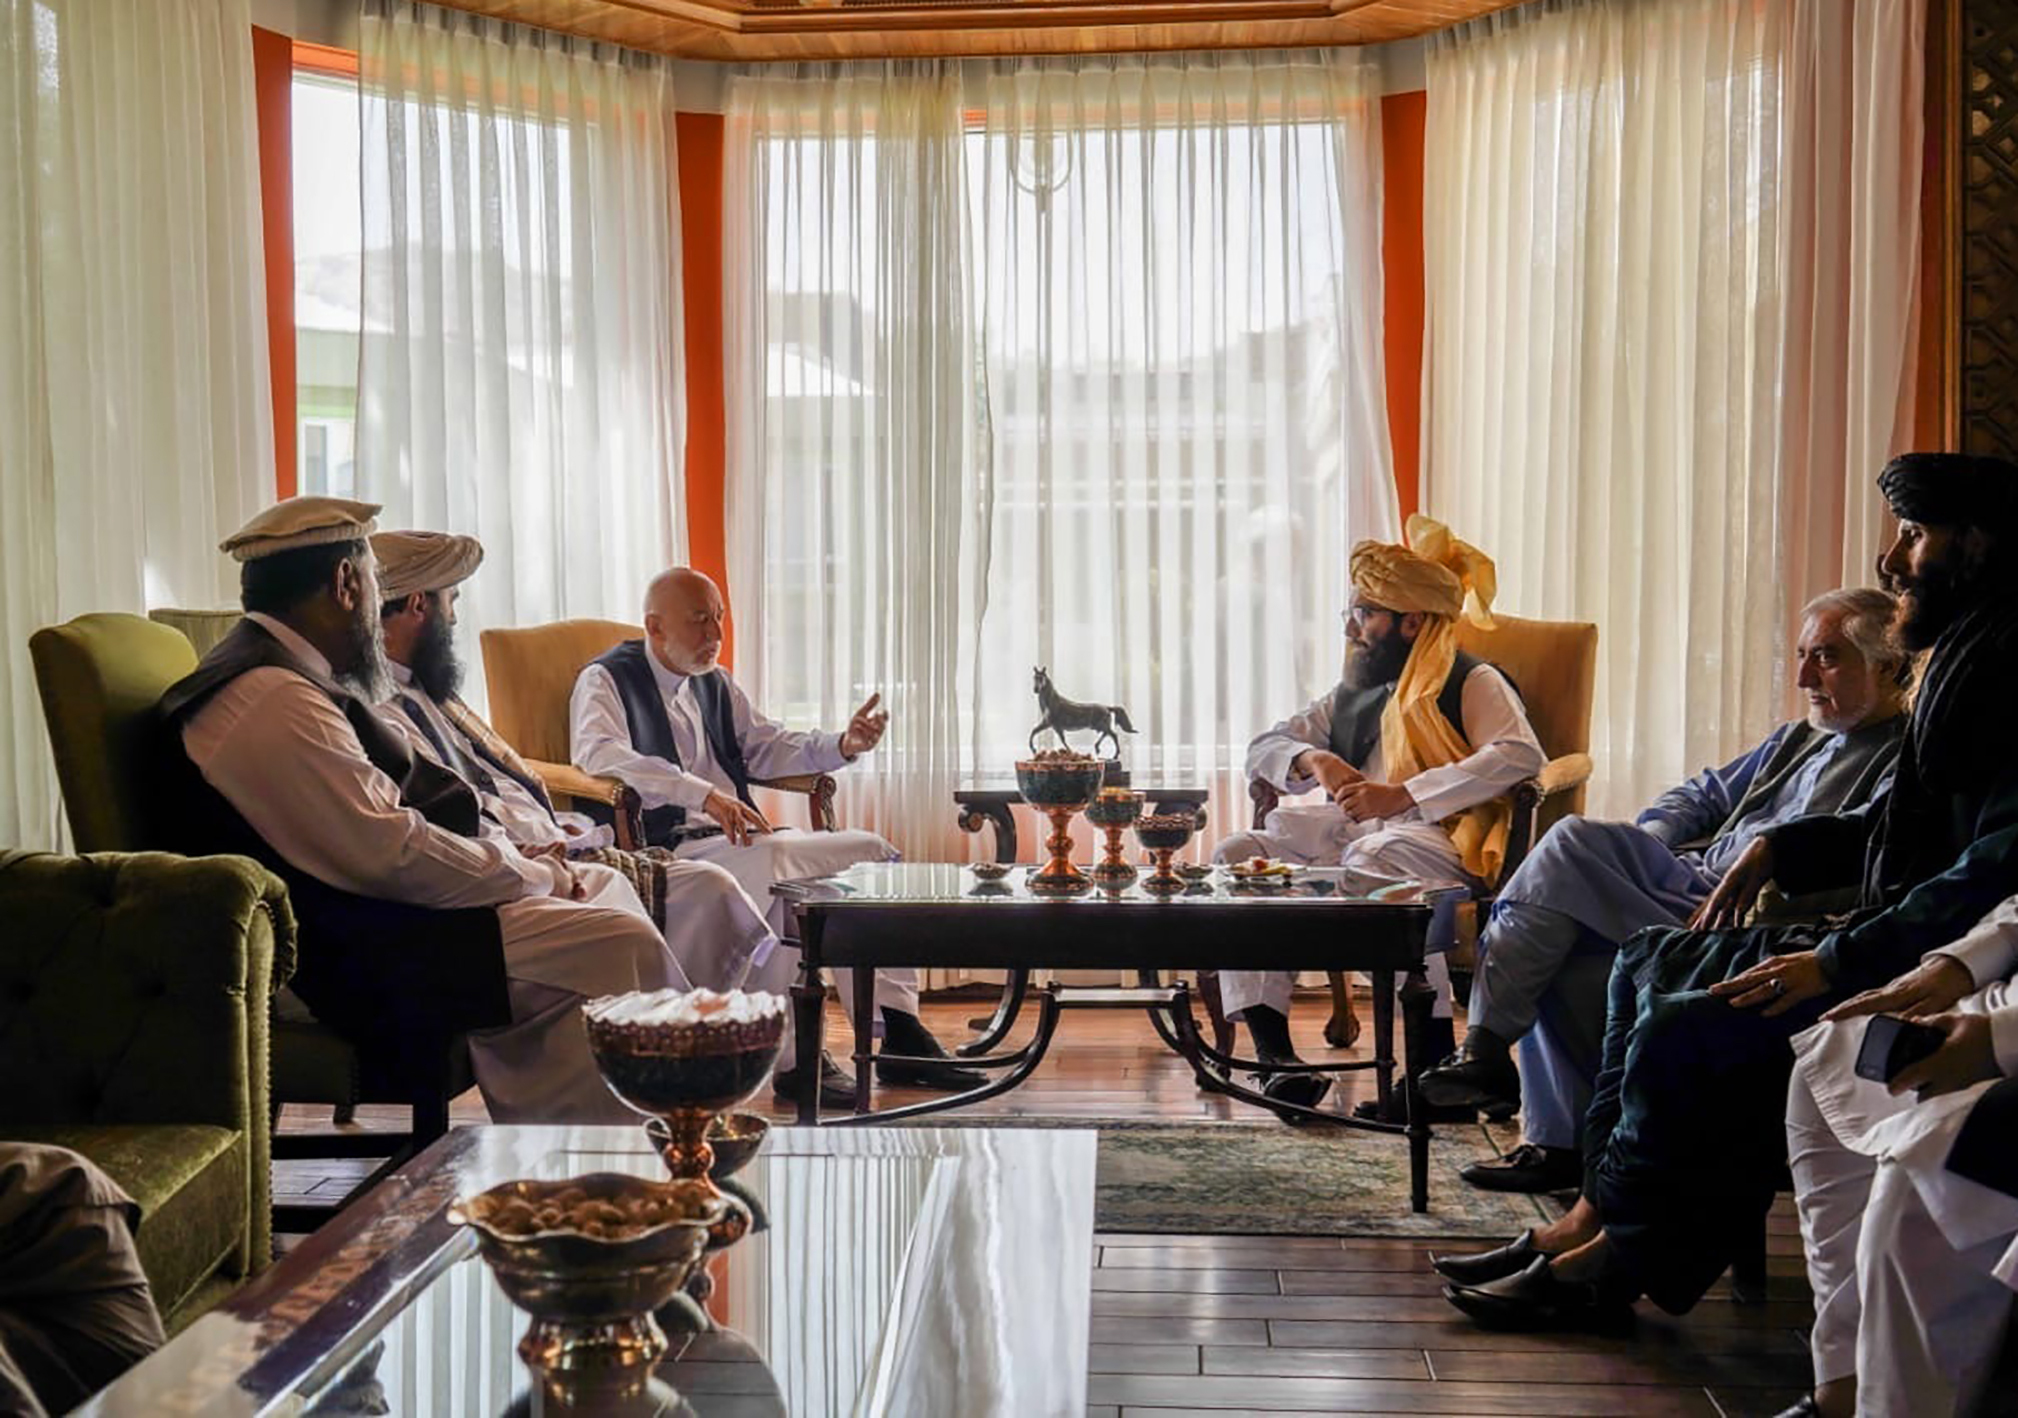 Taliban leaders meet with former President Hamid Karzai in Kabul after a Taliban takeover of the city.